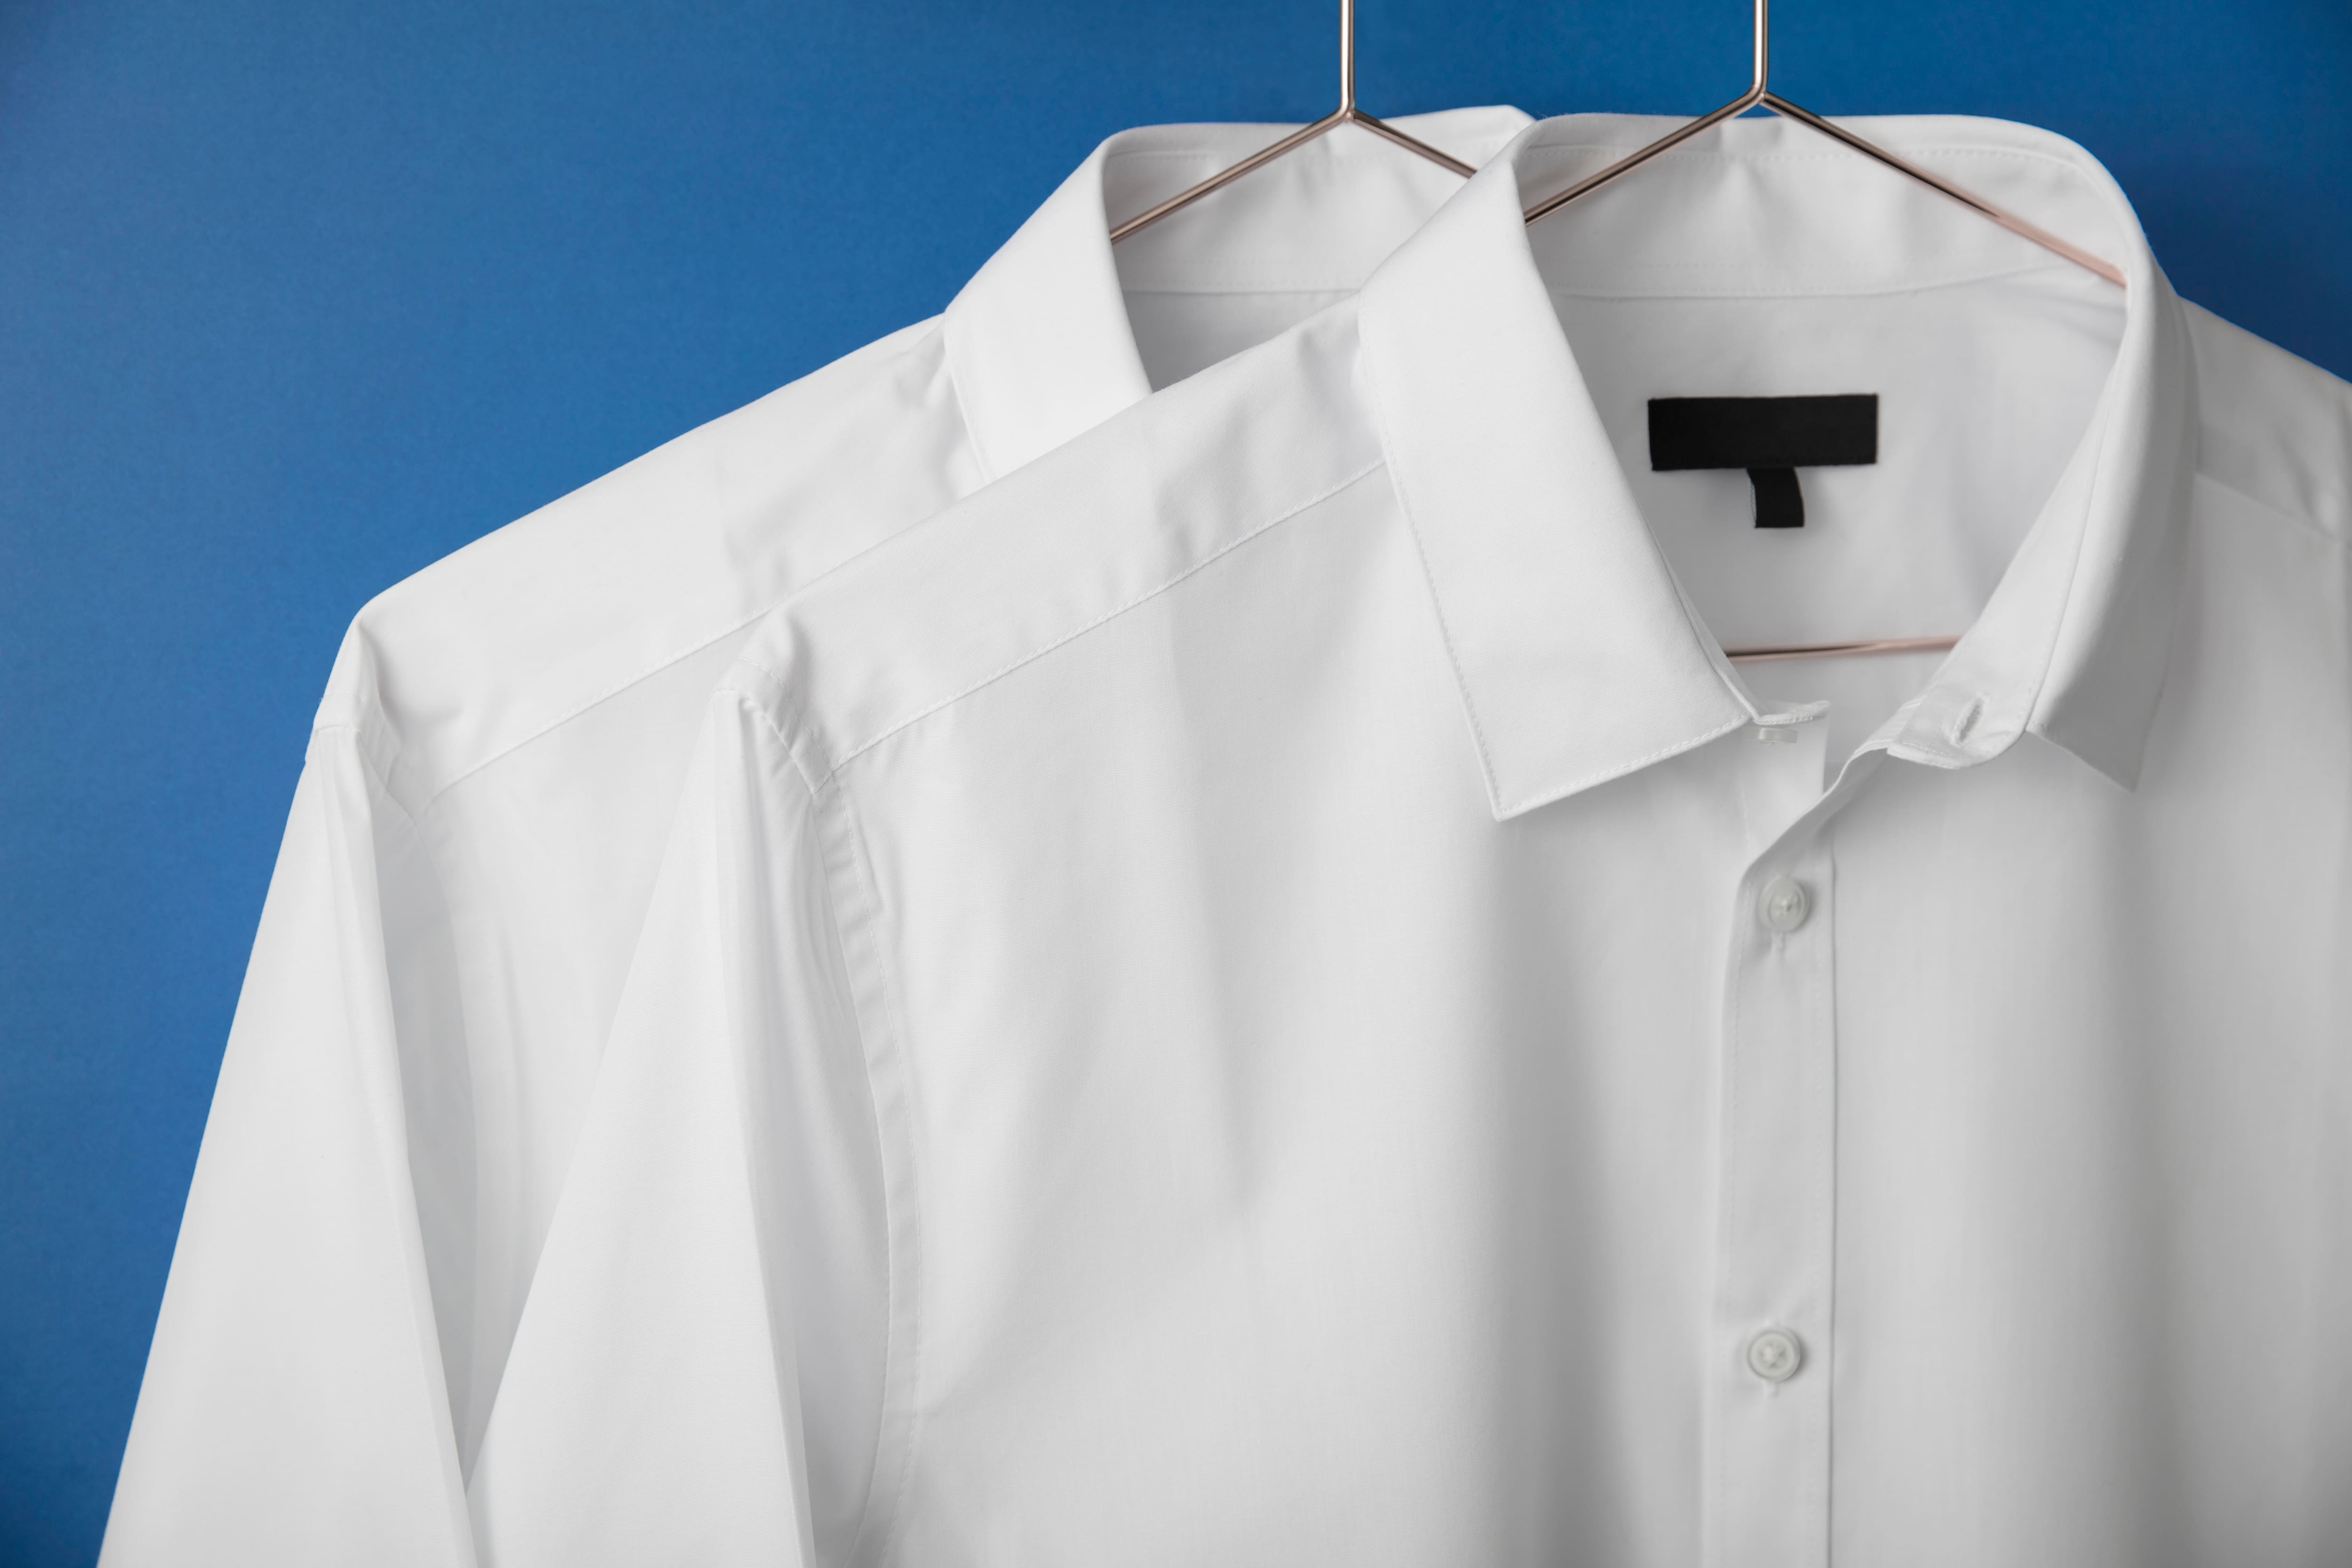 How To Remove Stains From White Clothes Cleanipedia